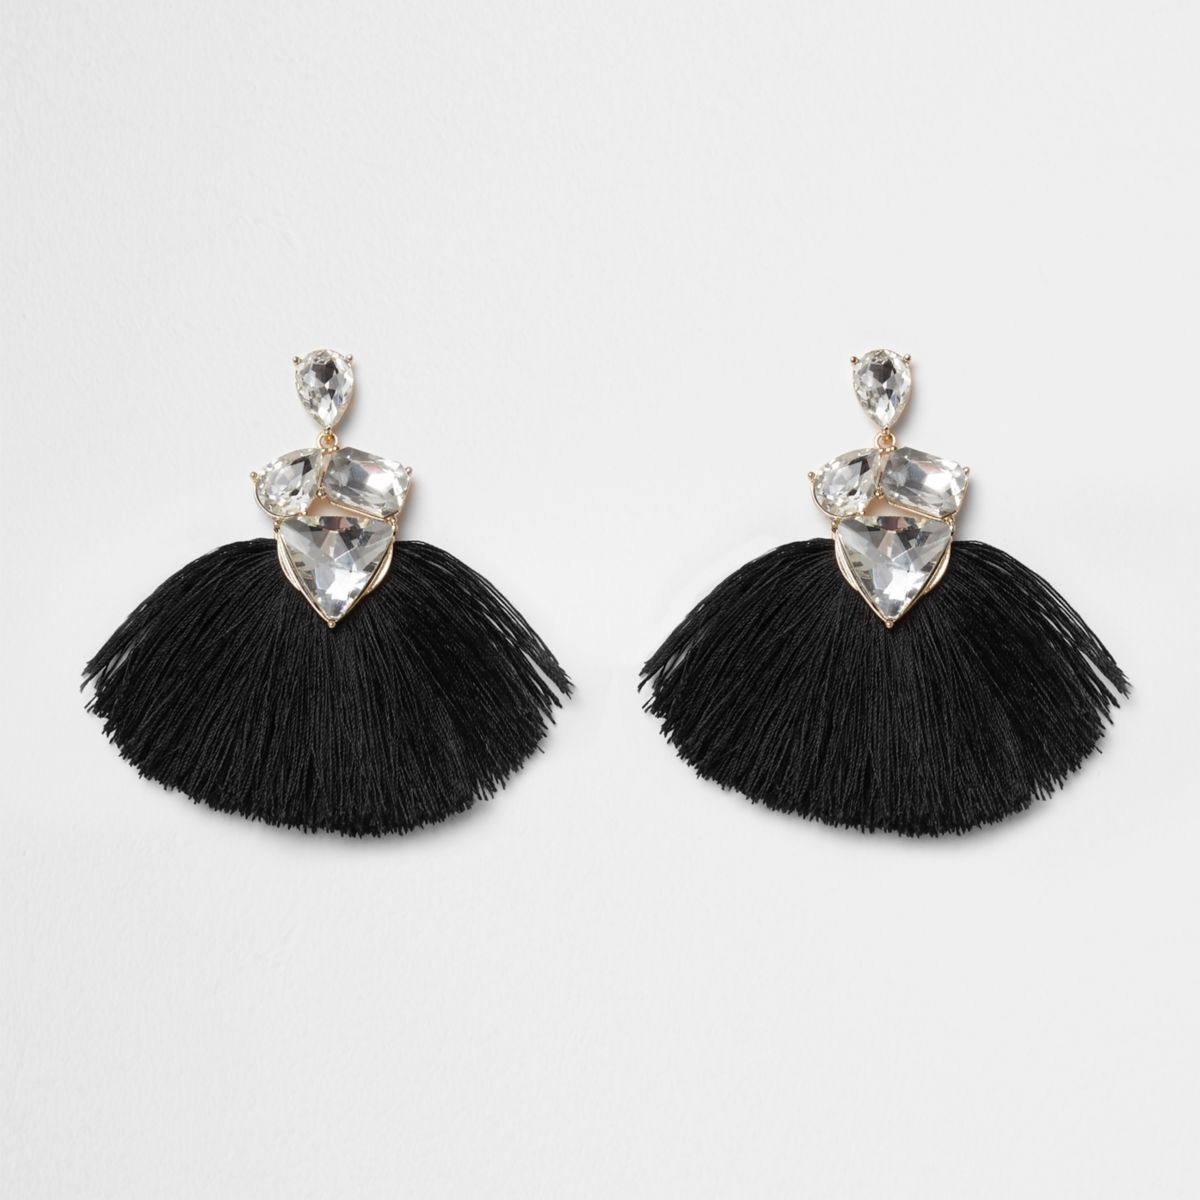 Black graduation tassels are ideal for any graduation ceremony. A feeling of pride in comes along with wearing these. A feeling that will remain with them as they continue forward in their education, or in their future employment, and look back on their experiences at your institution.